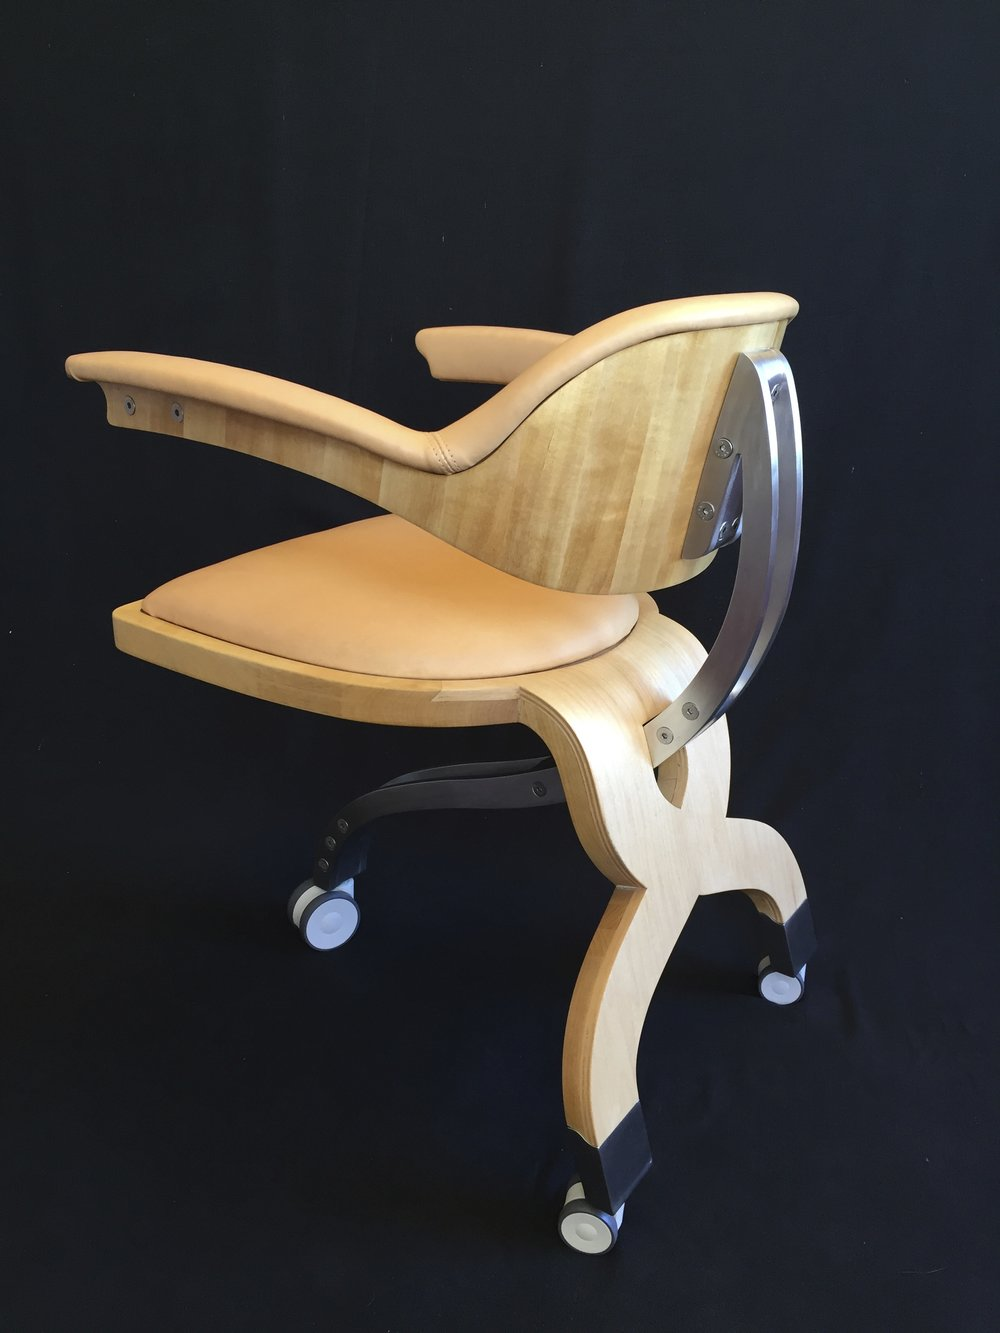 Riunióne desk chair